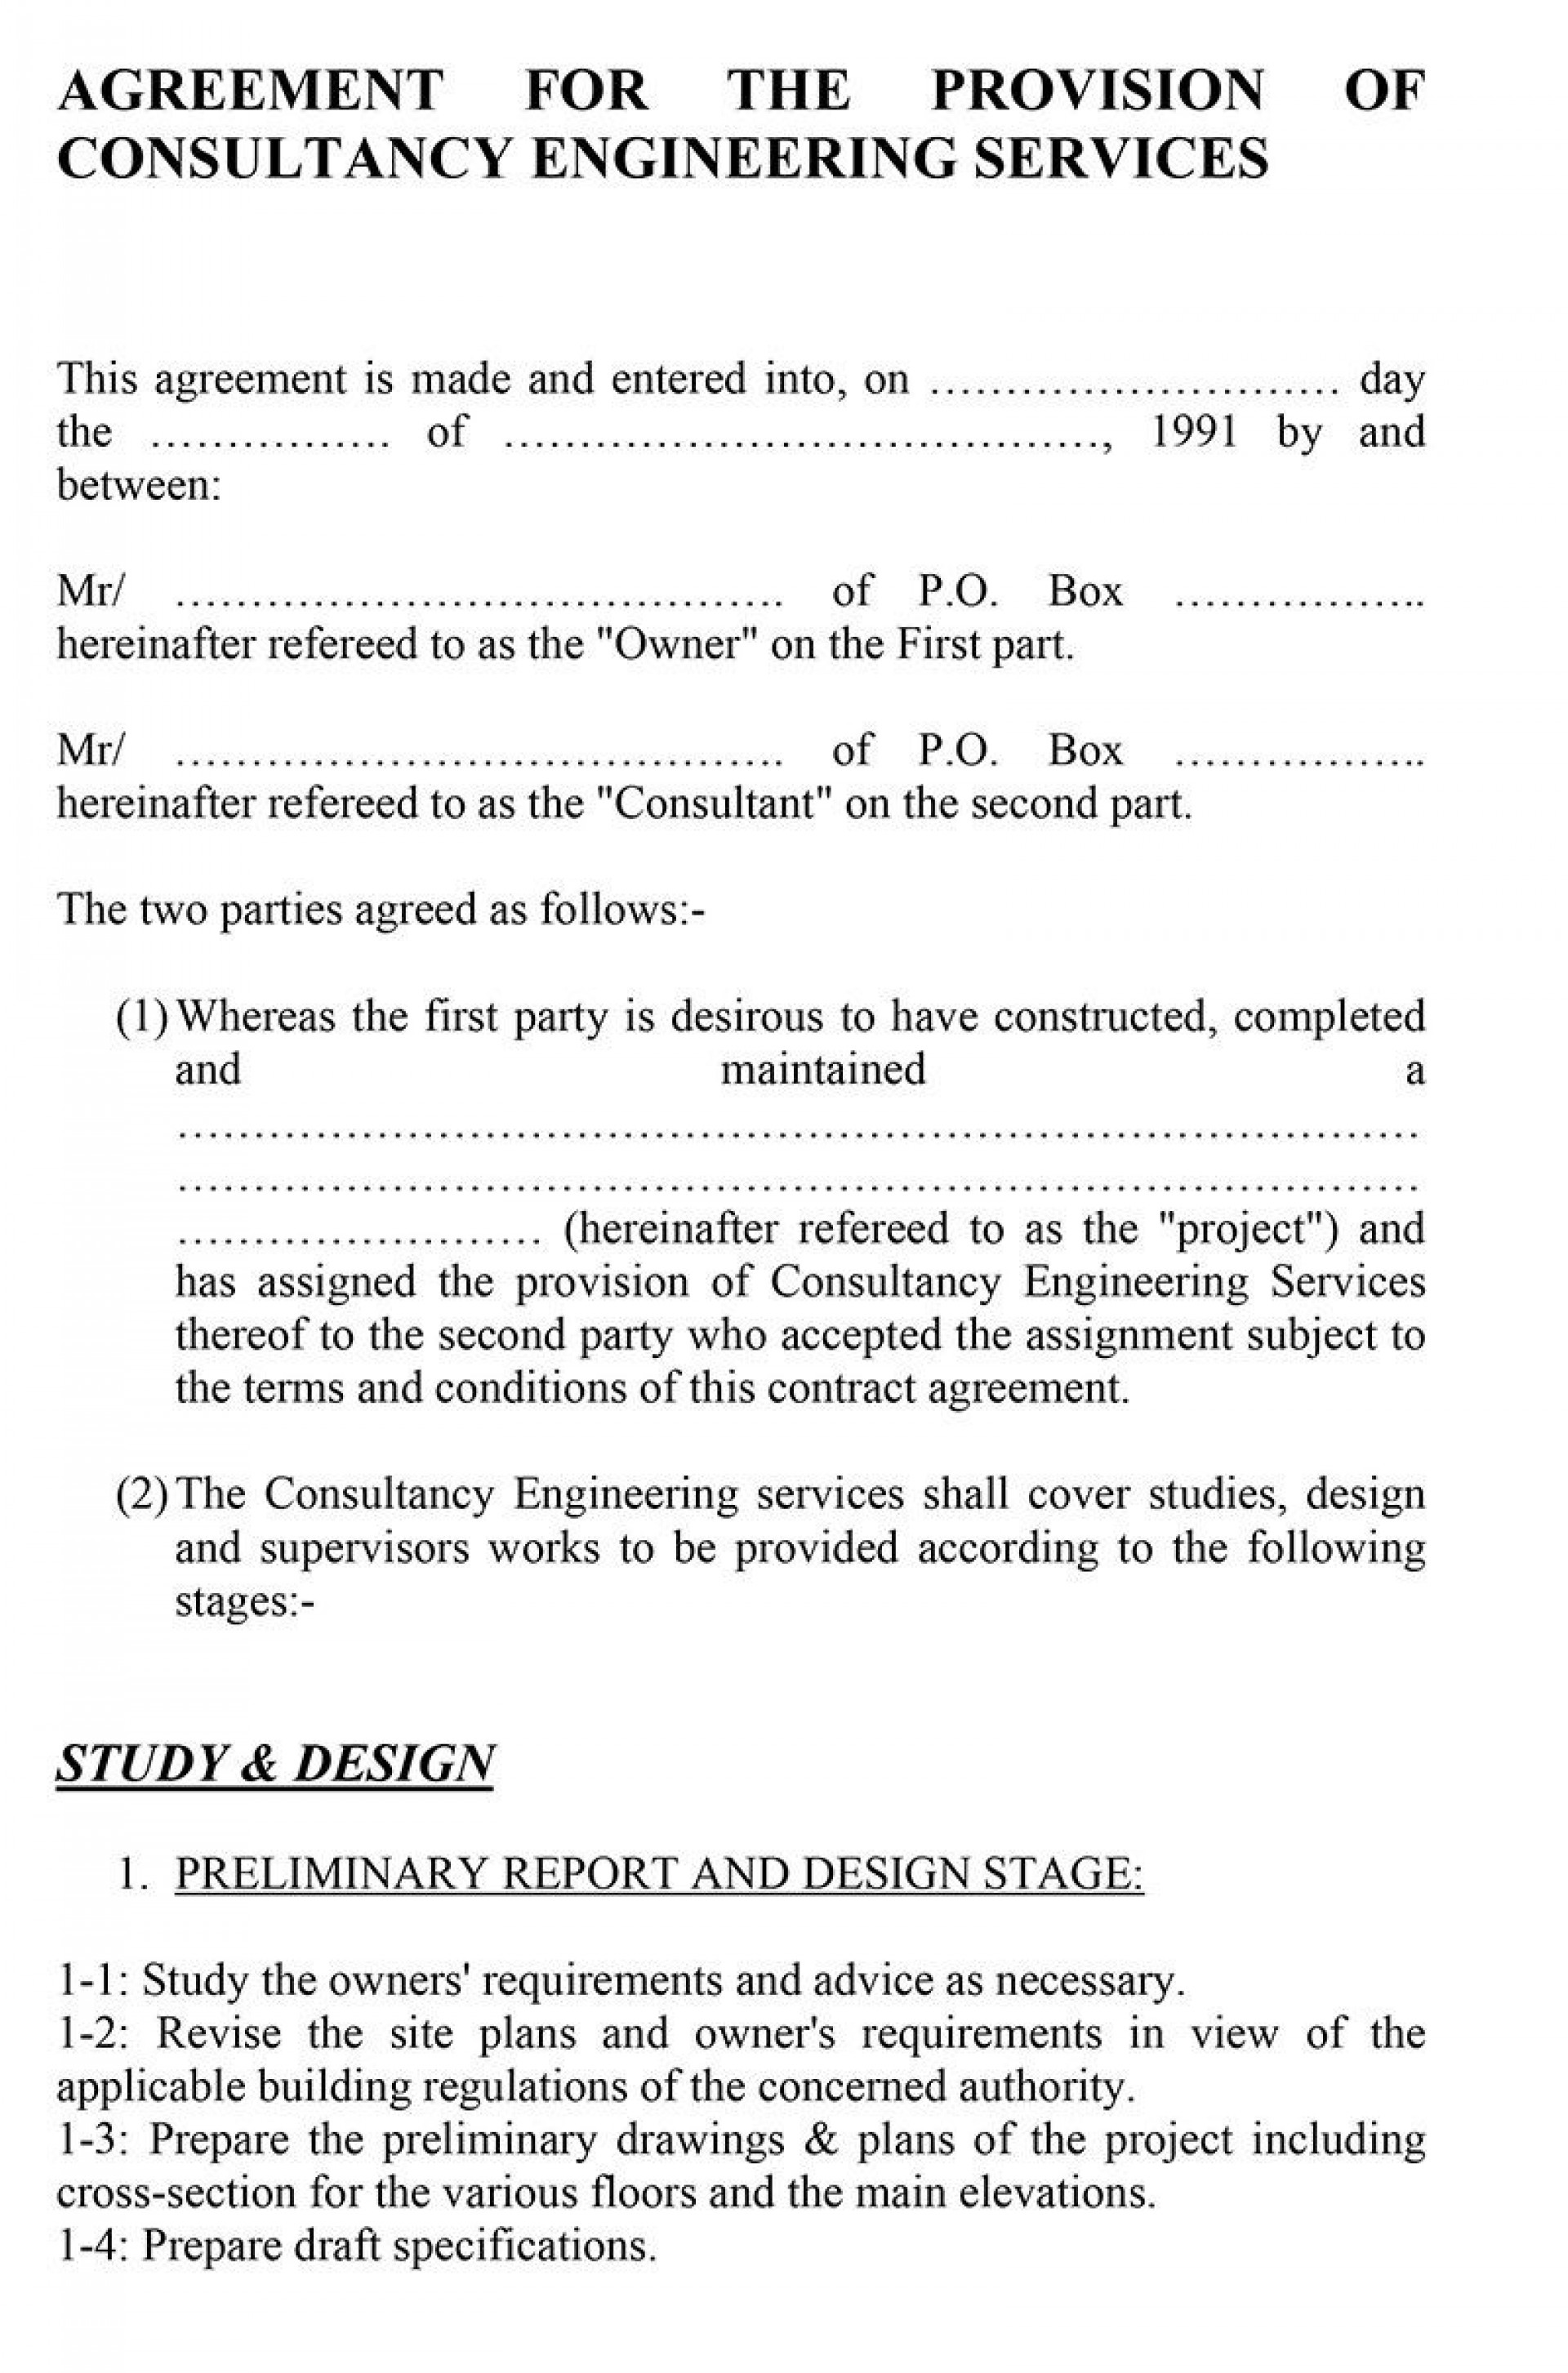 009 Wondrou Consulting Agreement Template Word Design  Sample Free1920